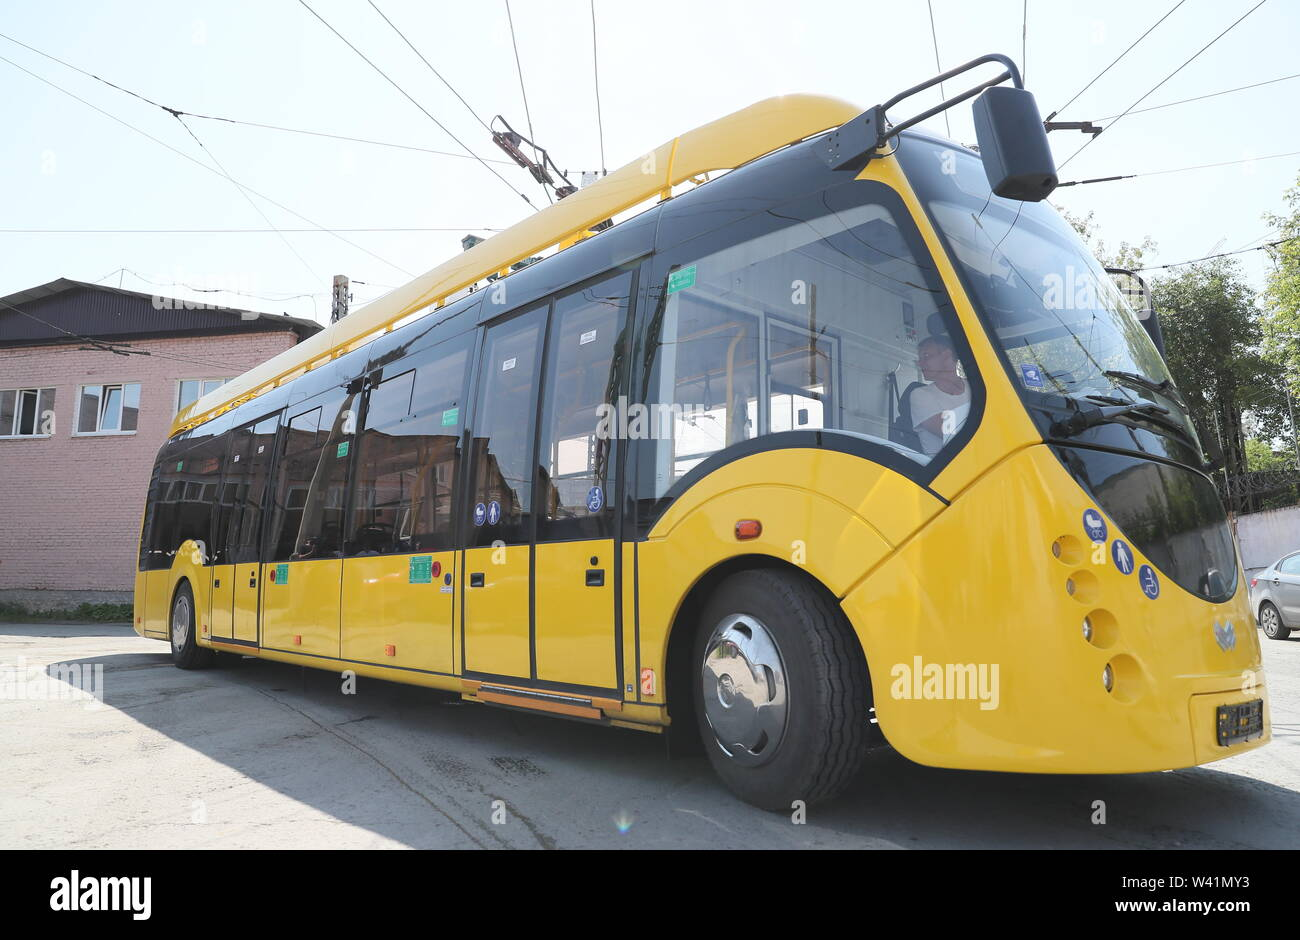 Yekaterinburg, Russia. 19th July, 2019. YEKATERINBURG, RUSSIA - JULY 19, 2019: A Belkommunmash electric bus during a test run along Trolleybus Route 1, from Shchorsa Street to a railway station. The bus, manufactured by Belarus' Belkommunmash Company, was displayed at the 2019 Innoprom exhibition. Donat Sorokin/TASS Credit: ITAR-TASS News Agency/Alamy Live News - Stock Image